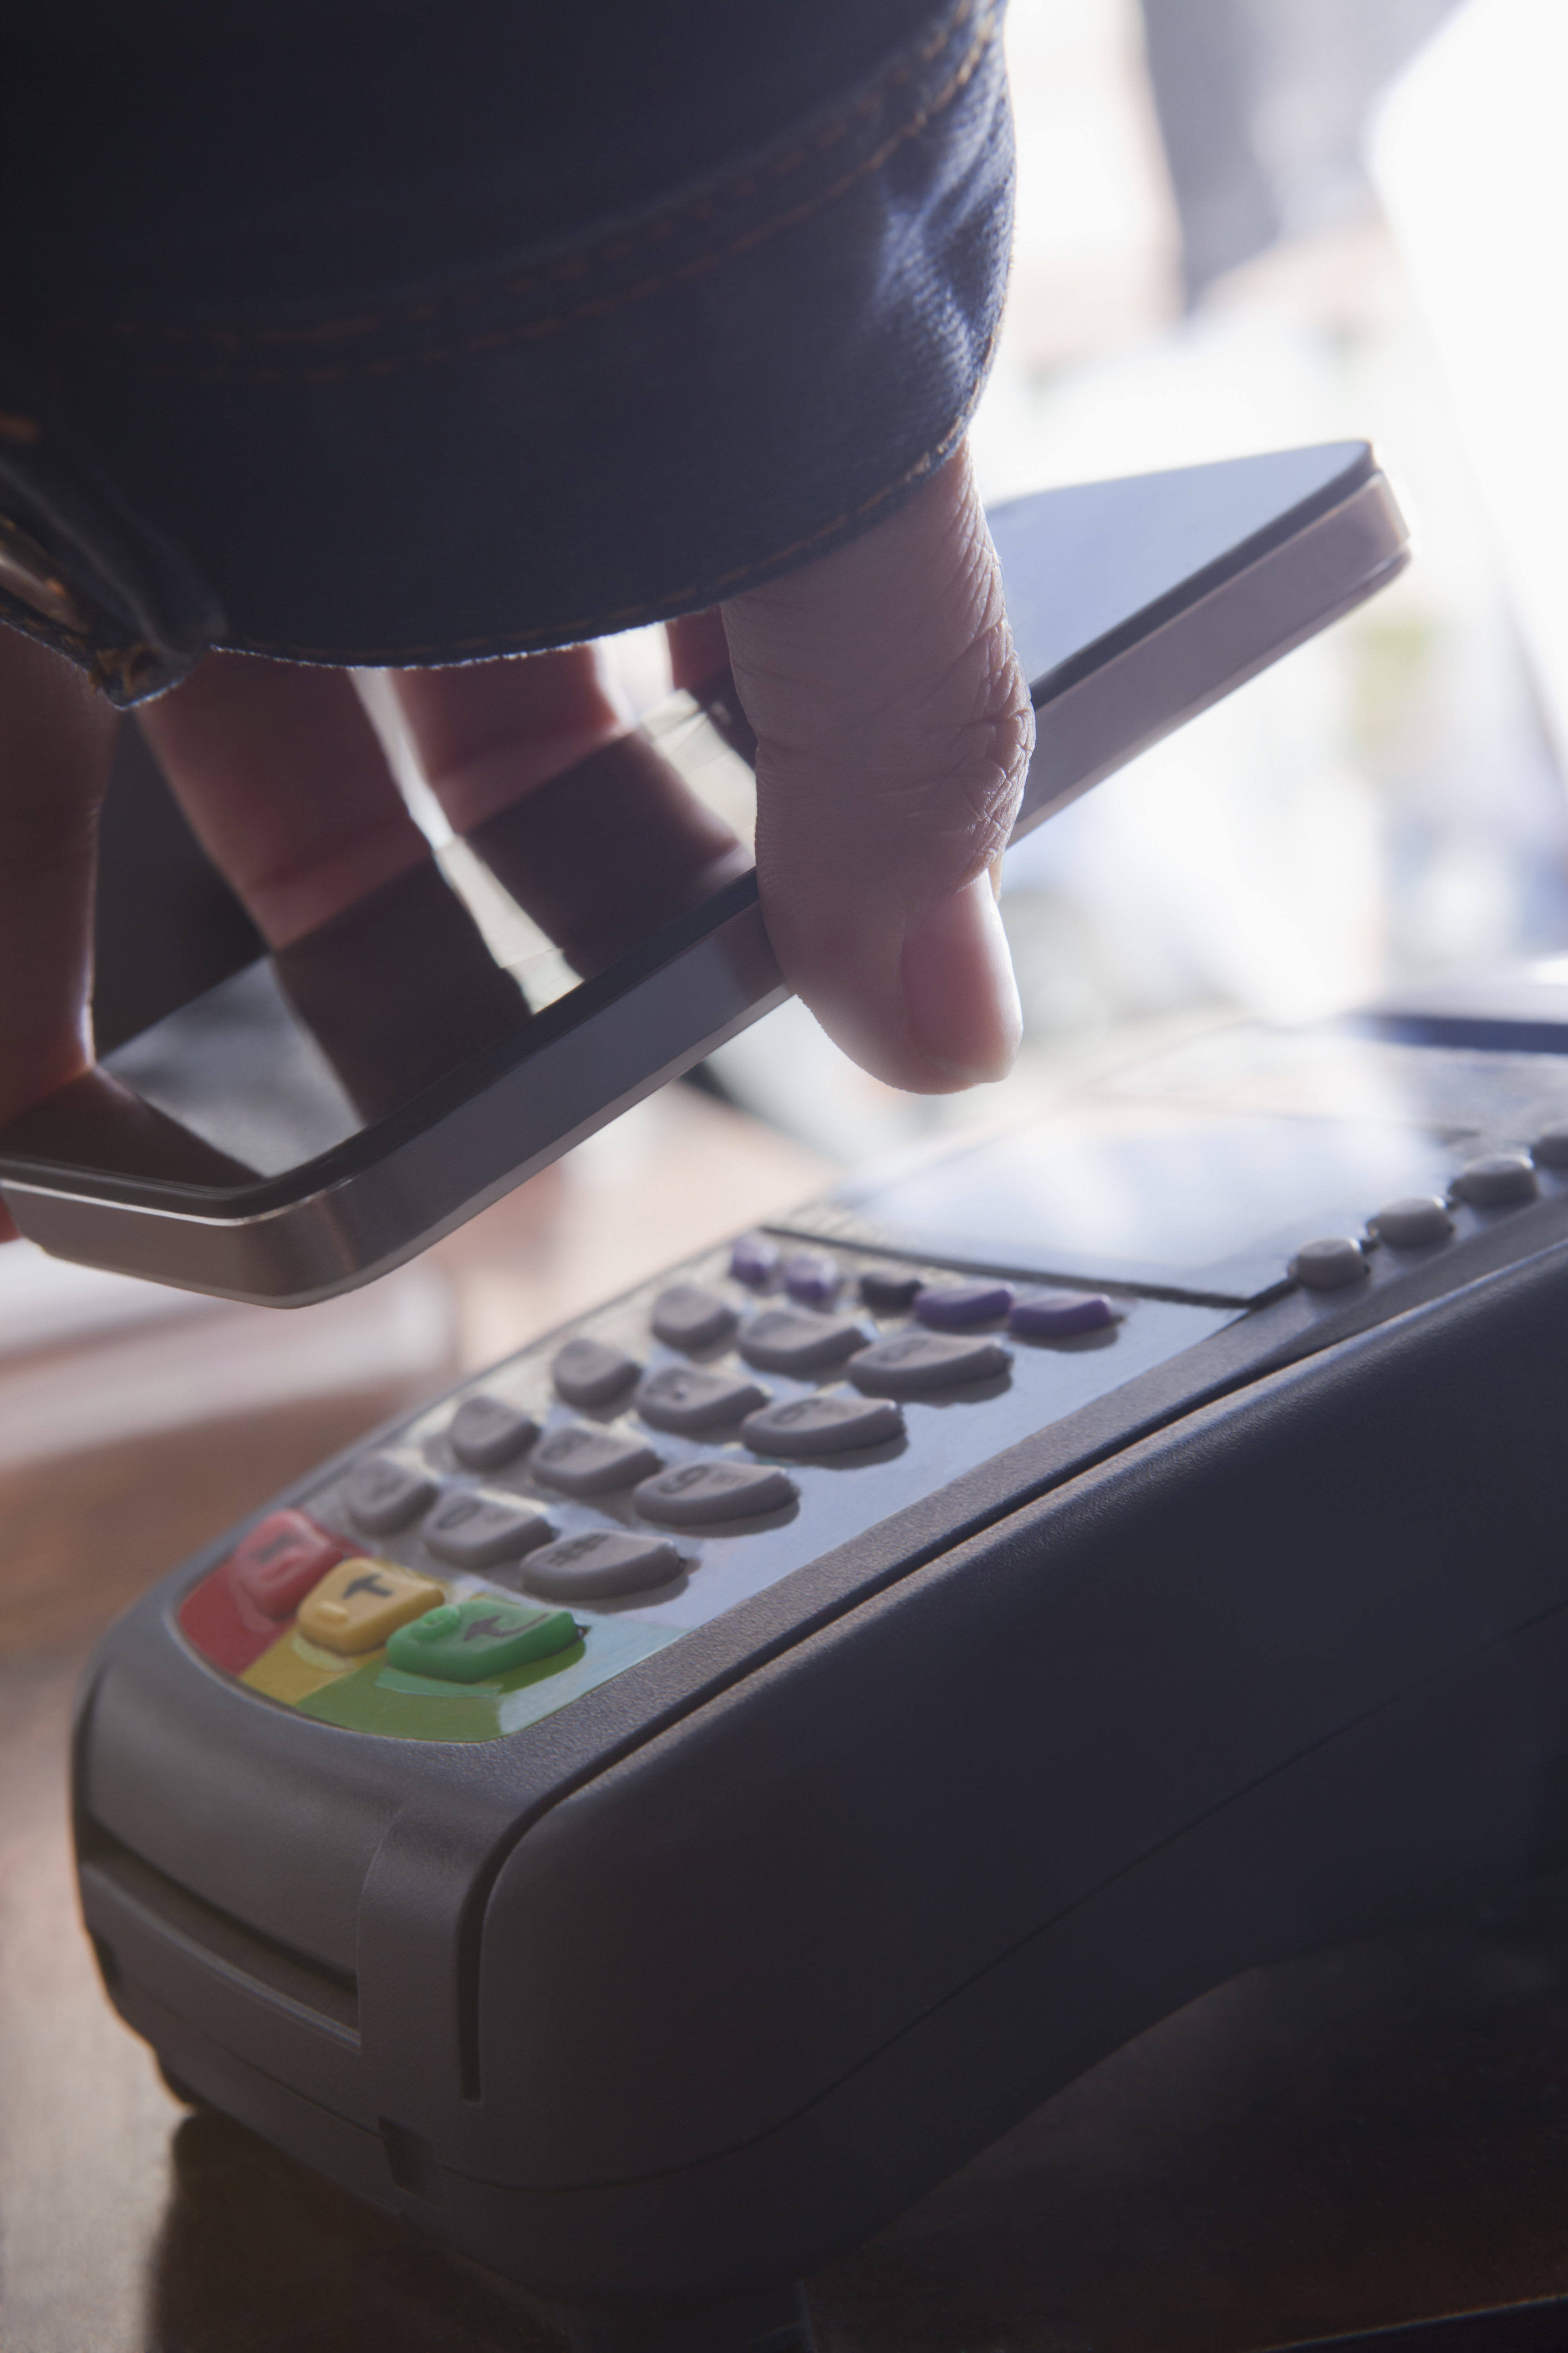 Hispanic woman scanning credit card from cell phone